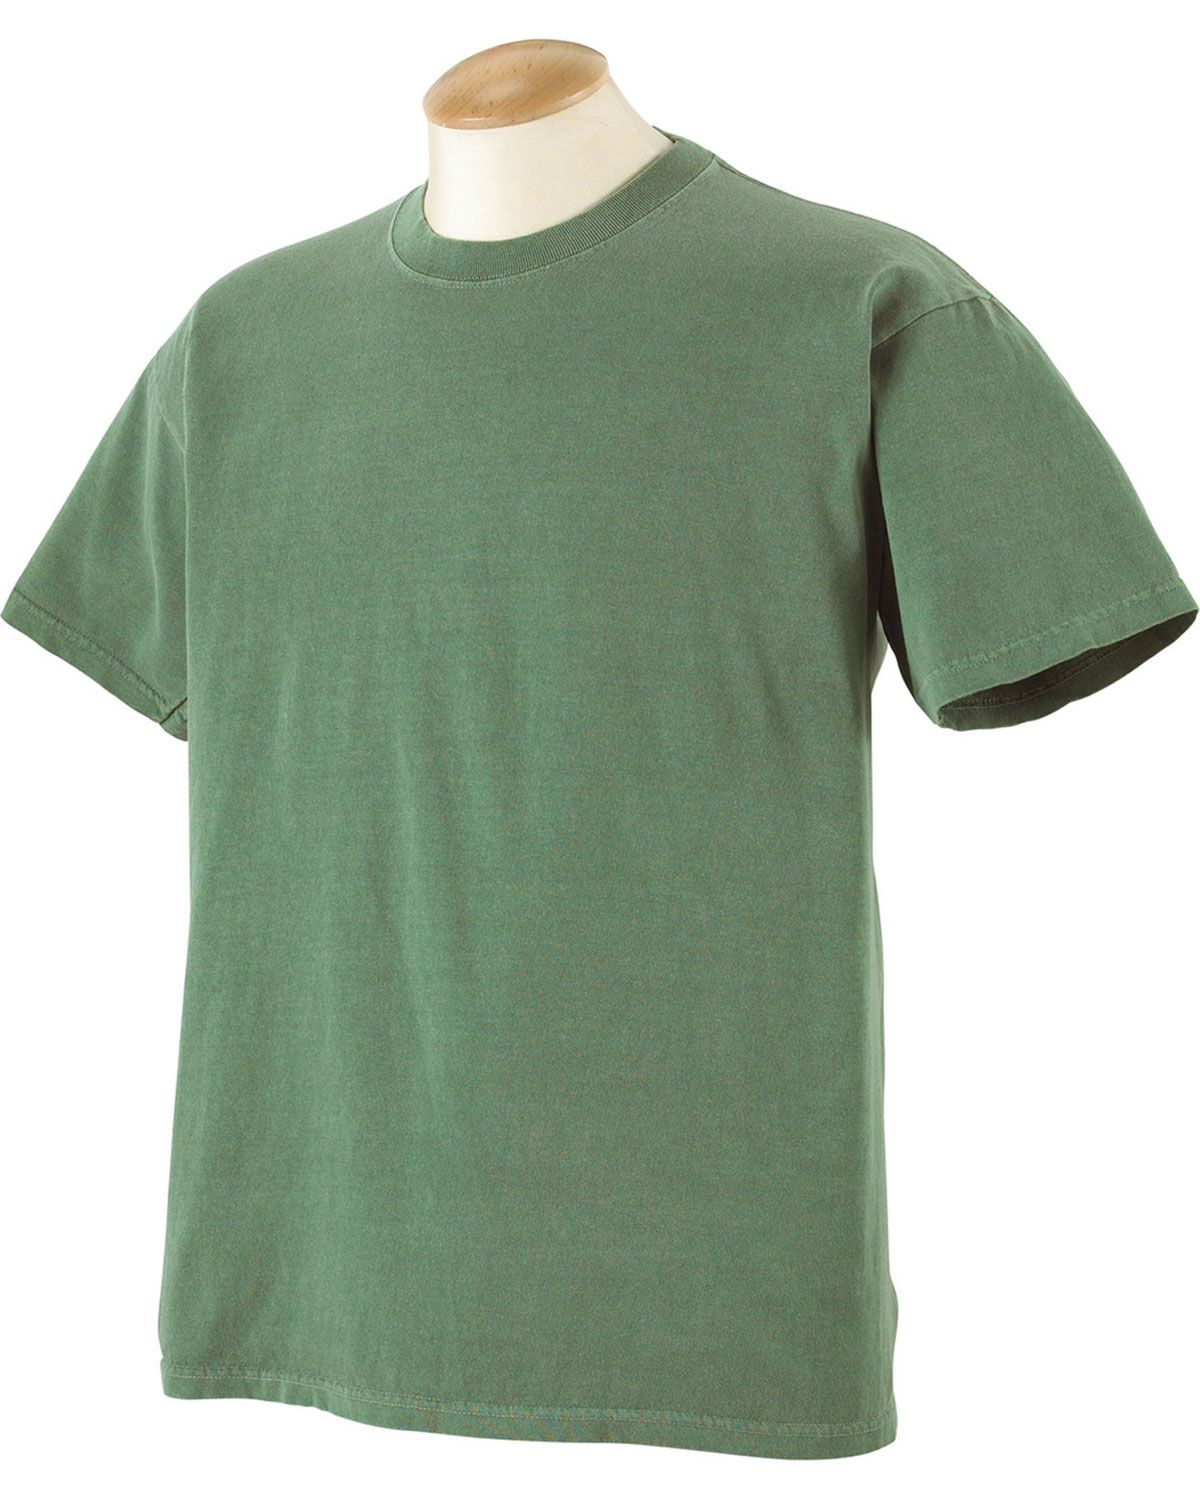 Pigment Dyed T Shirt Buy Wholesale Authentic Pigment Youth Pigment